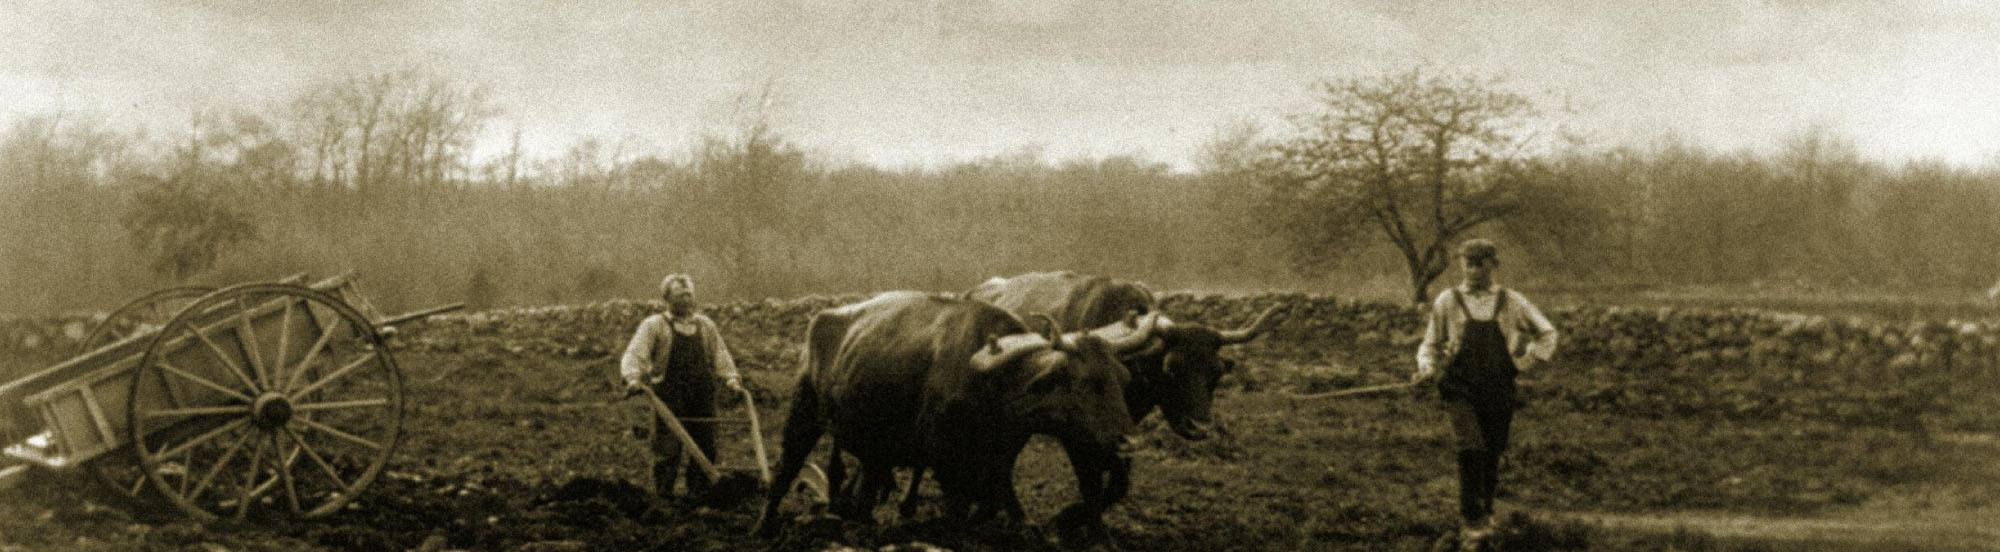 this is an image of vintage farmers using an ox and plow